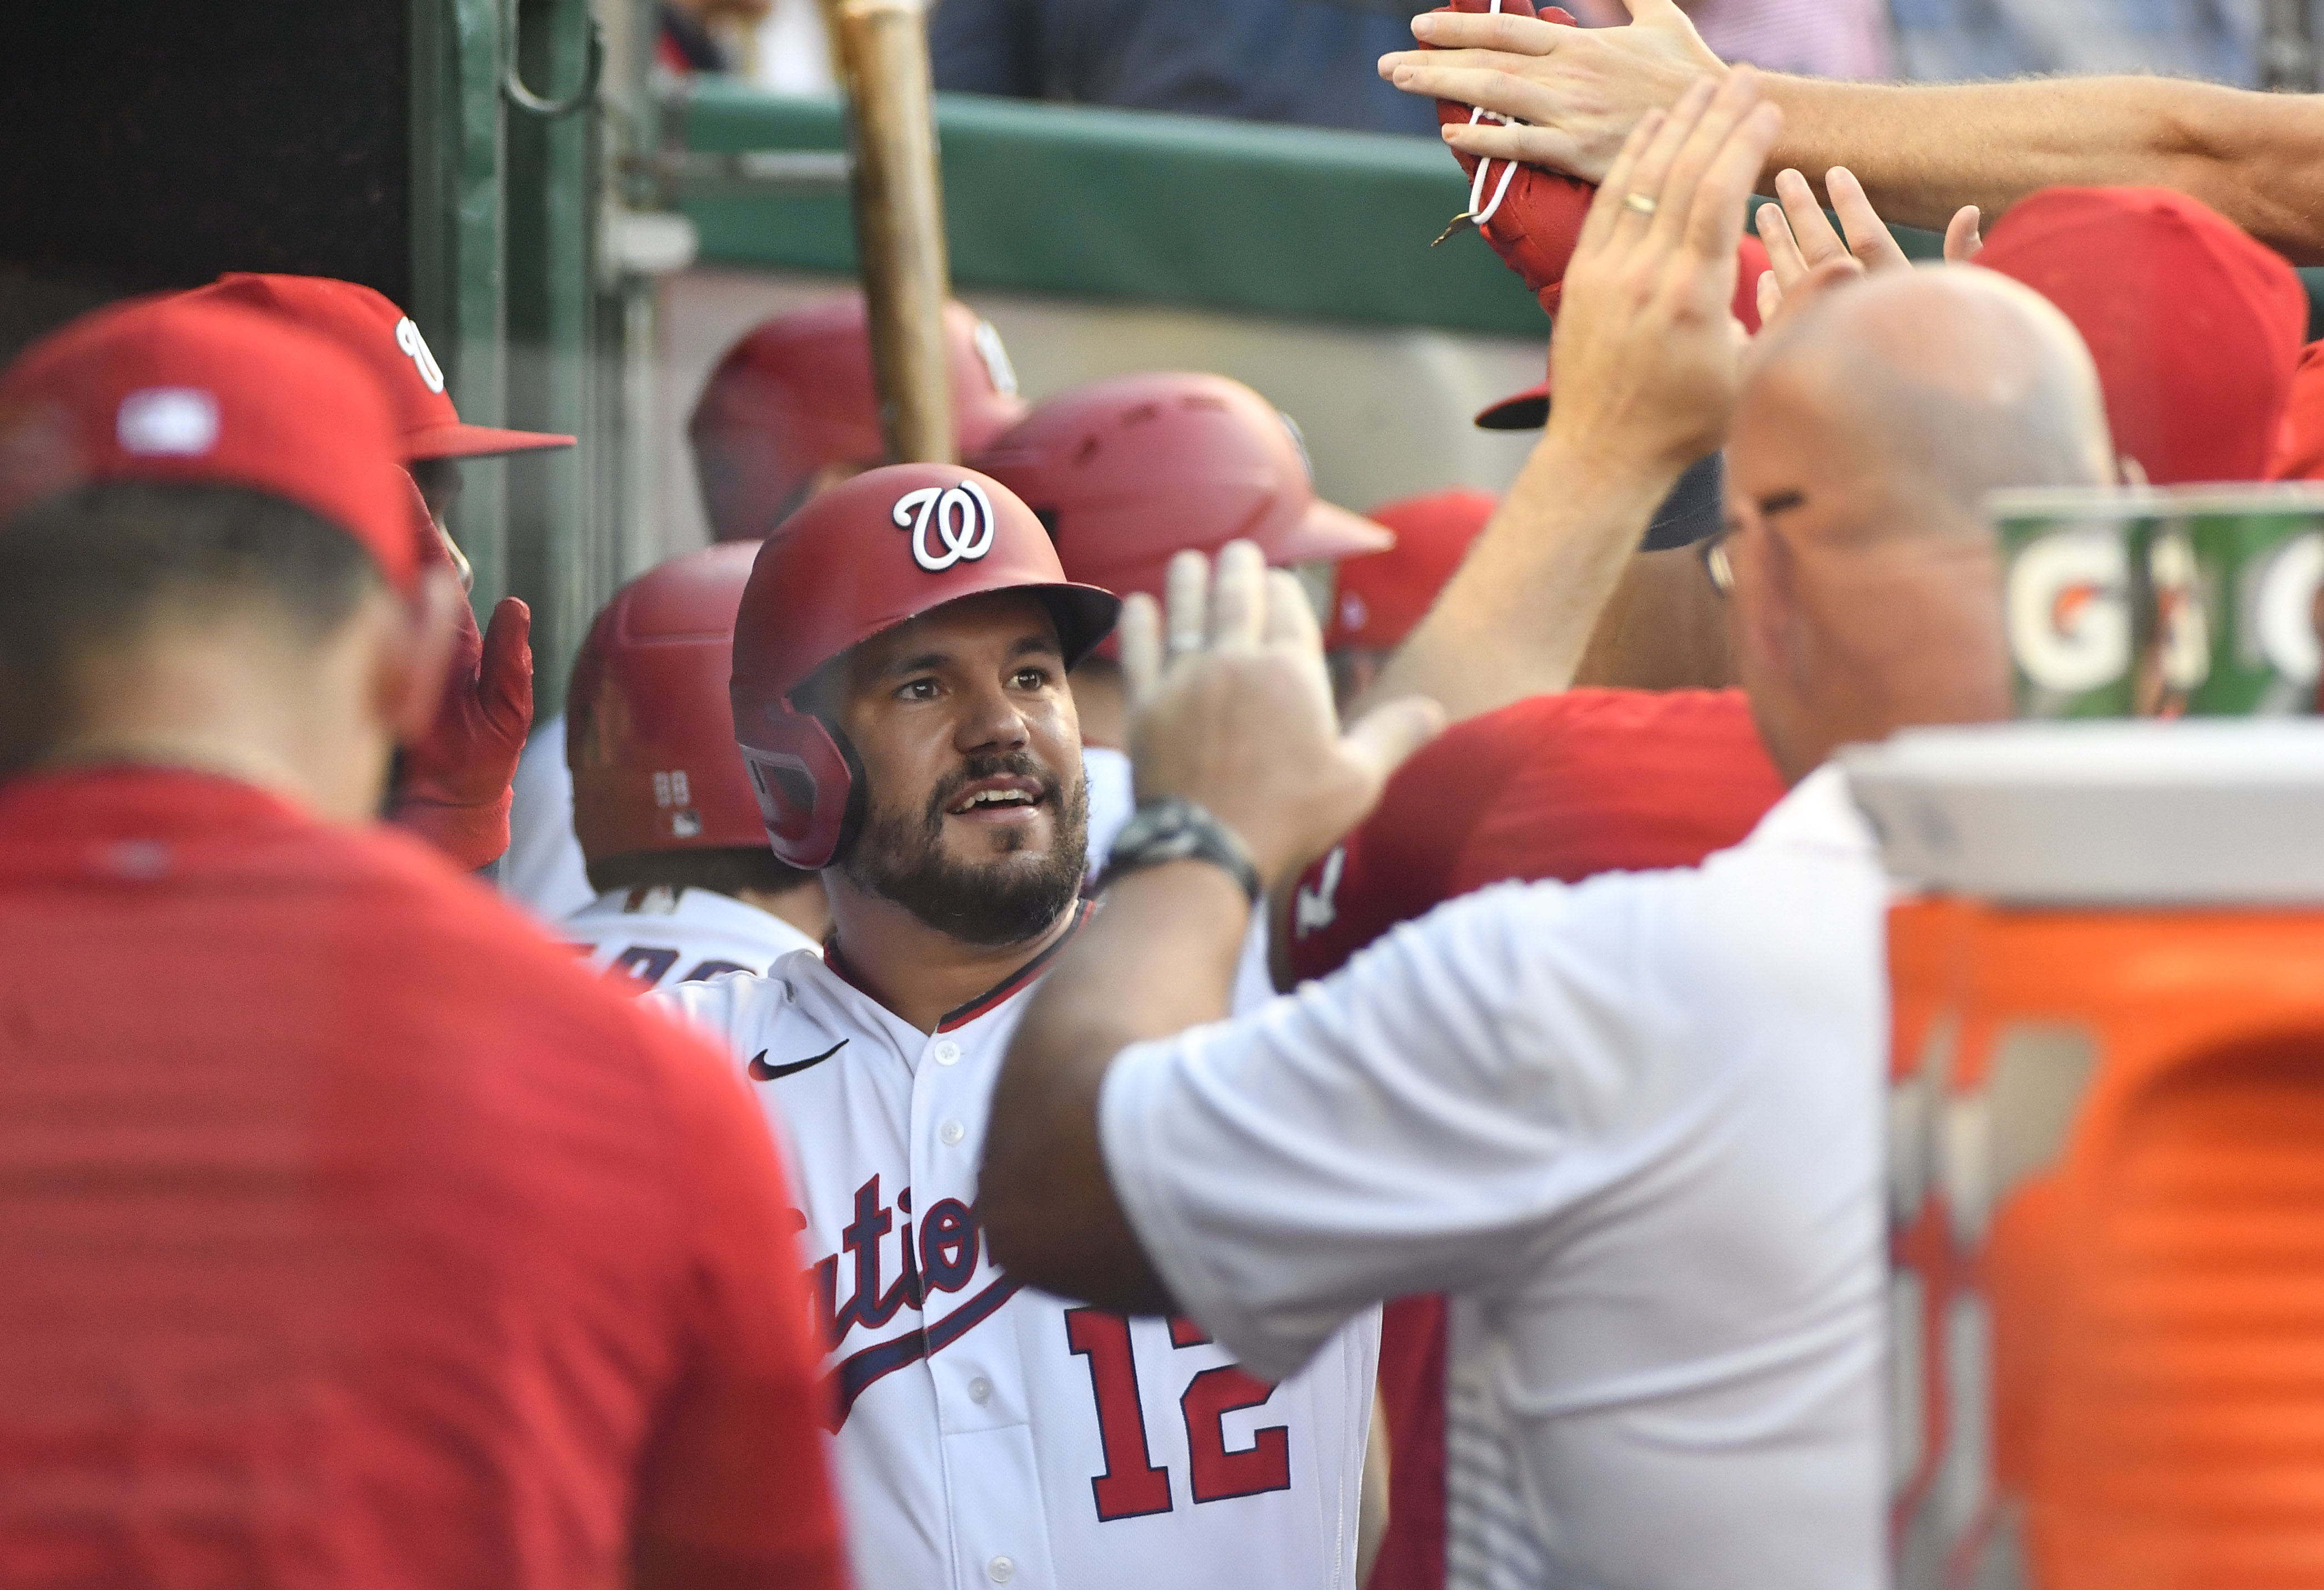 Jun 29, 2021; Washington, District of Columbia, USA; Washington Nationals left fielder Kyle Schwarber (12) is congratulated by teammates after hitting a solo home run against the Tampa Bay Rays during the first inning at Nationals Park. Mandatory Credit: Brad Mills-USA TODAY Sports